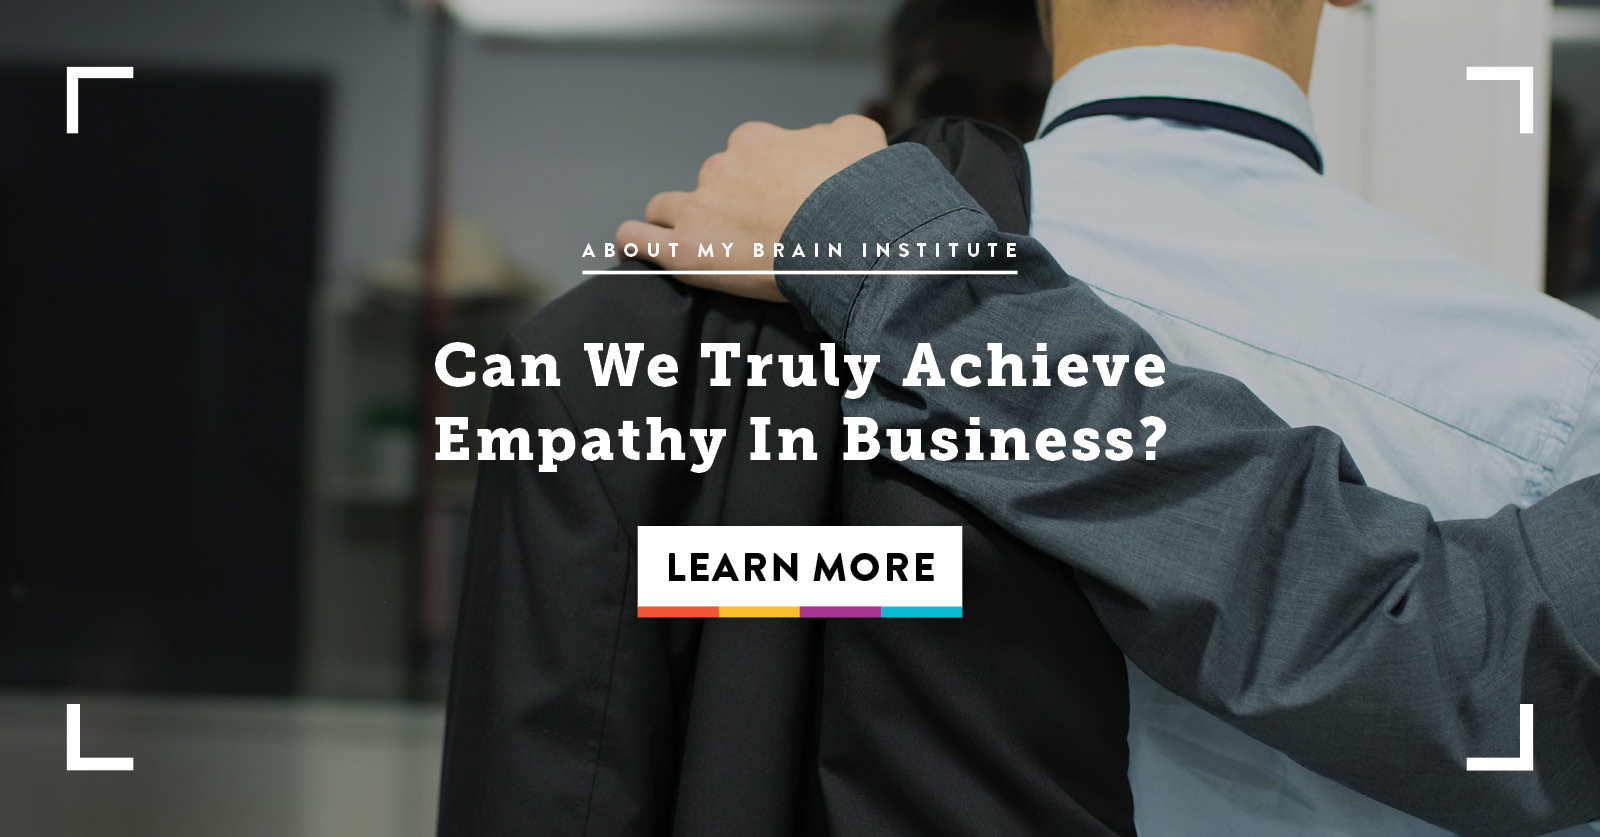 Can We Truly Achieve Empathy In Business?